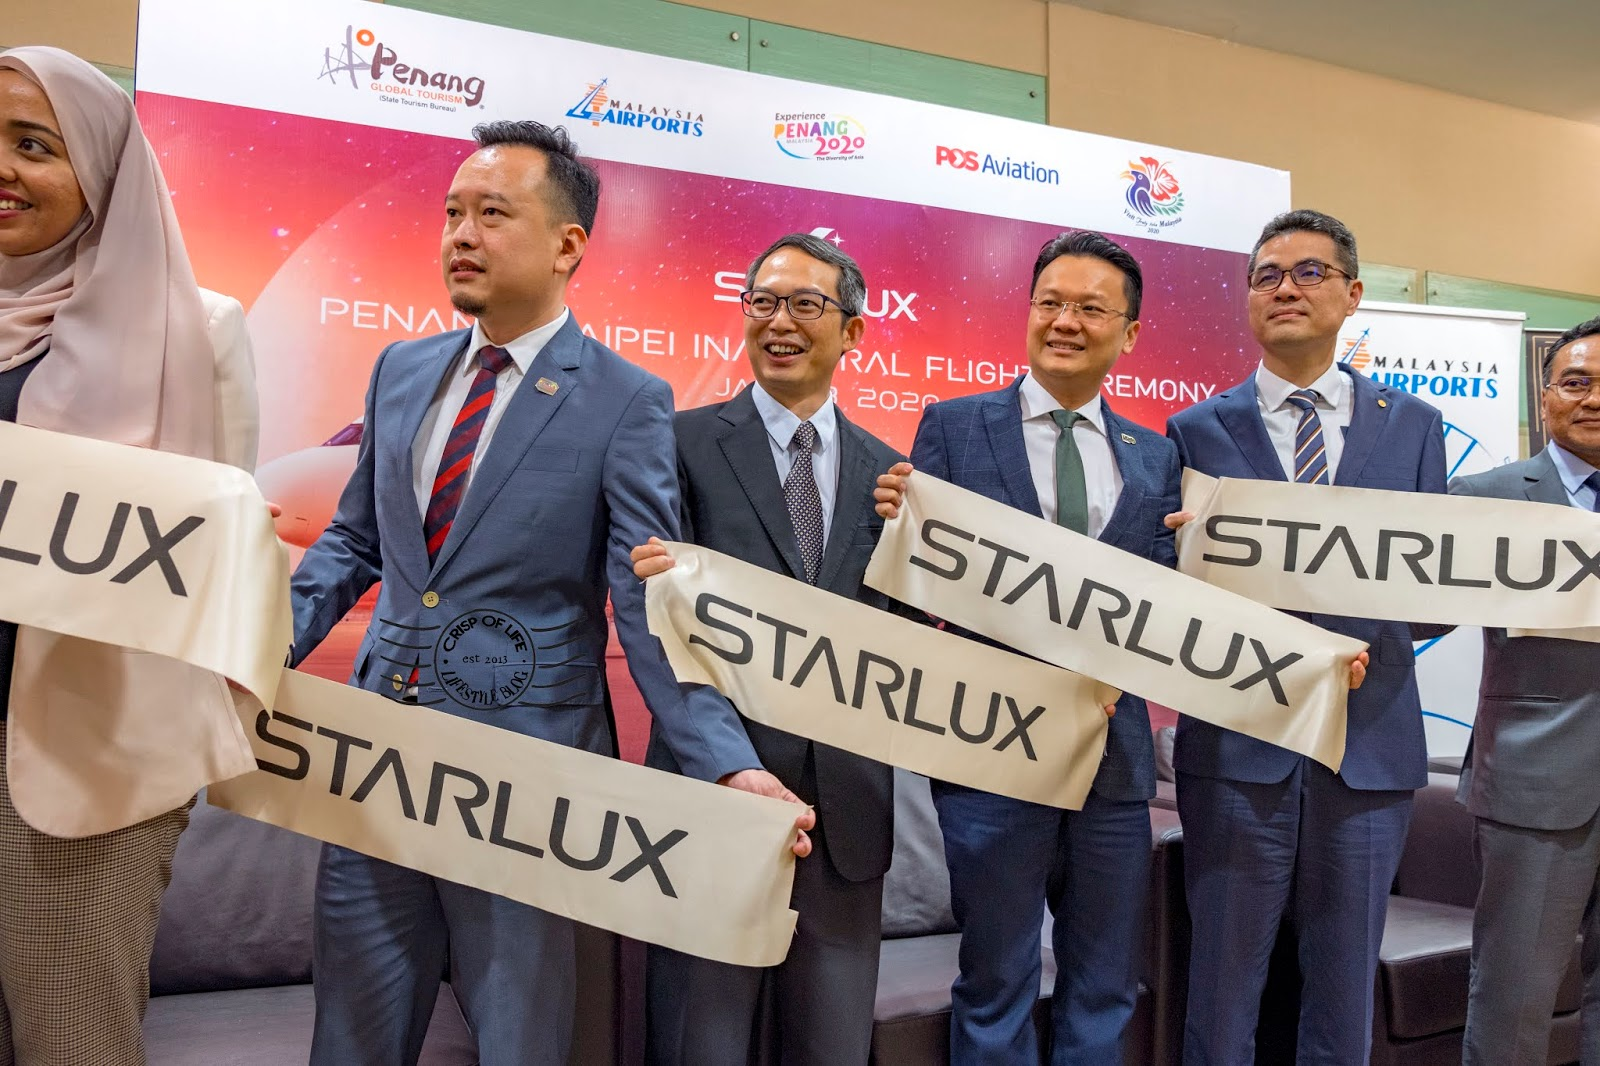 Penang - Taipei Direct Flight via New Luxury Boutique Airlines STARLUX